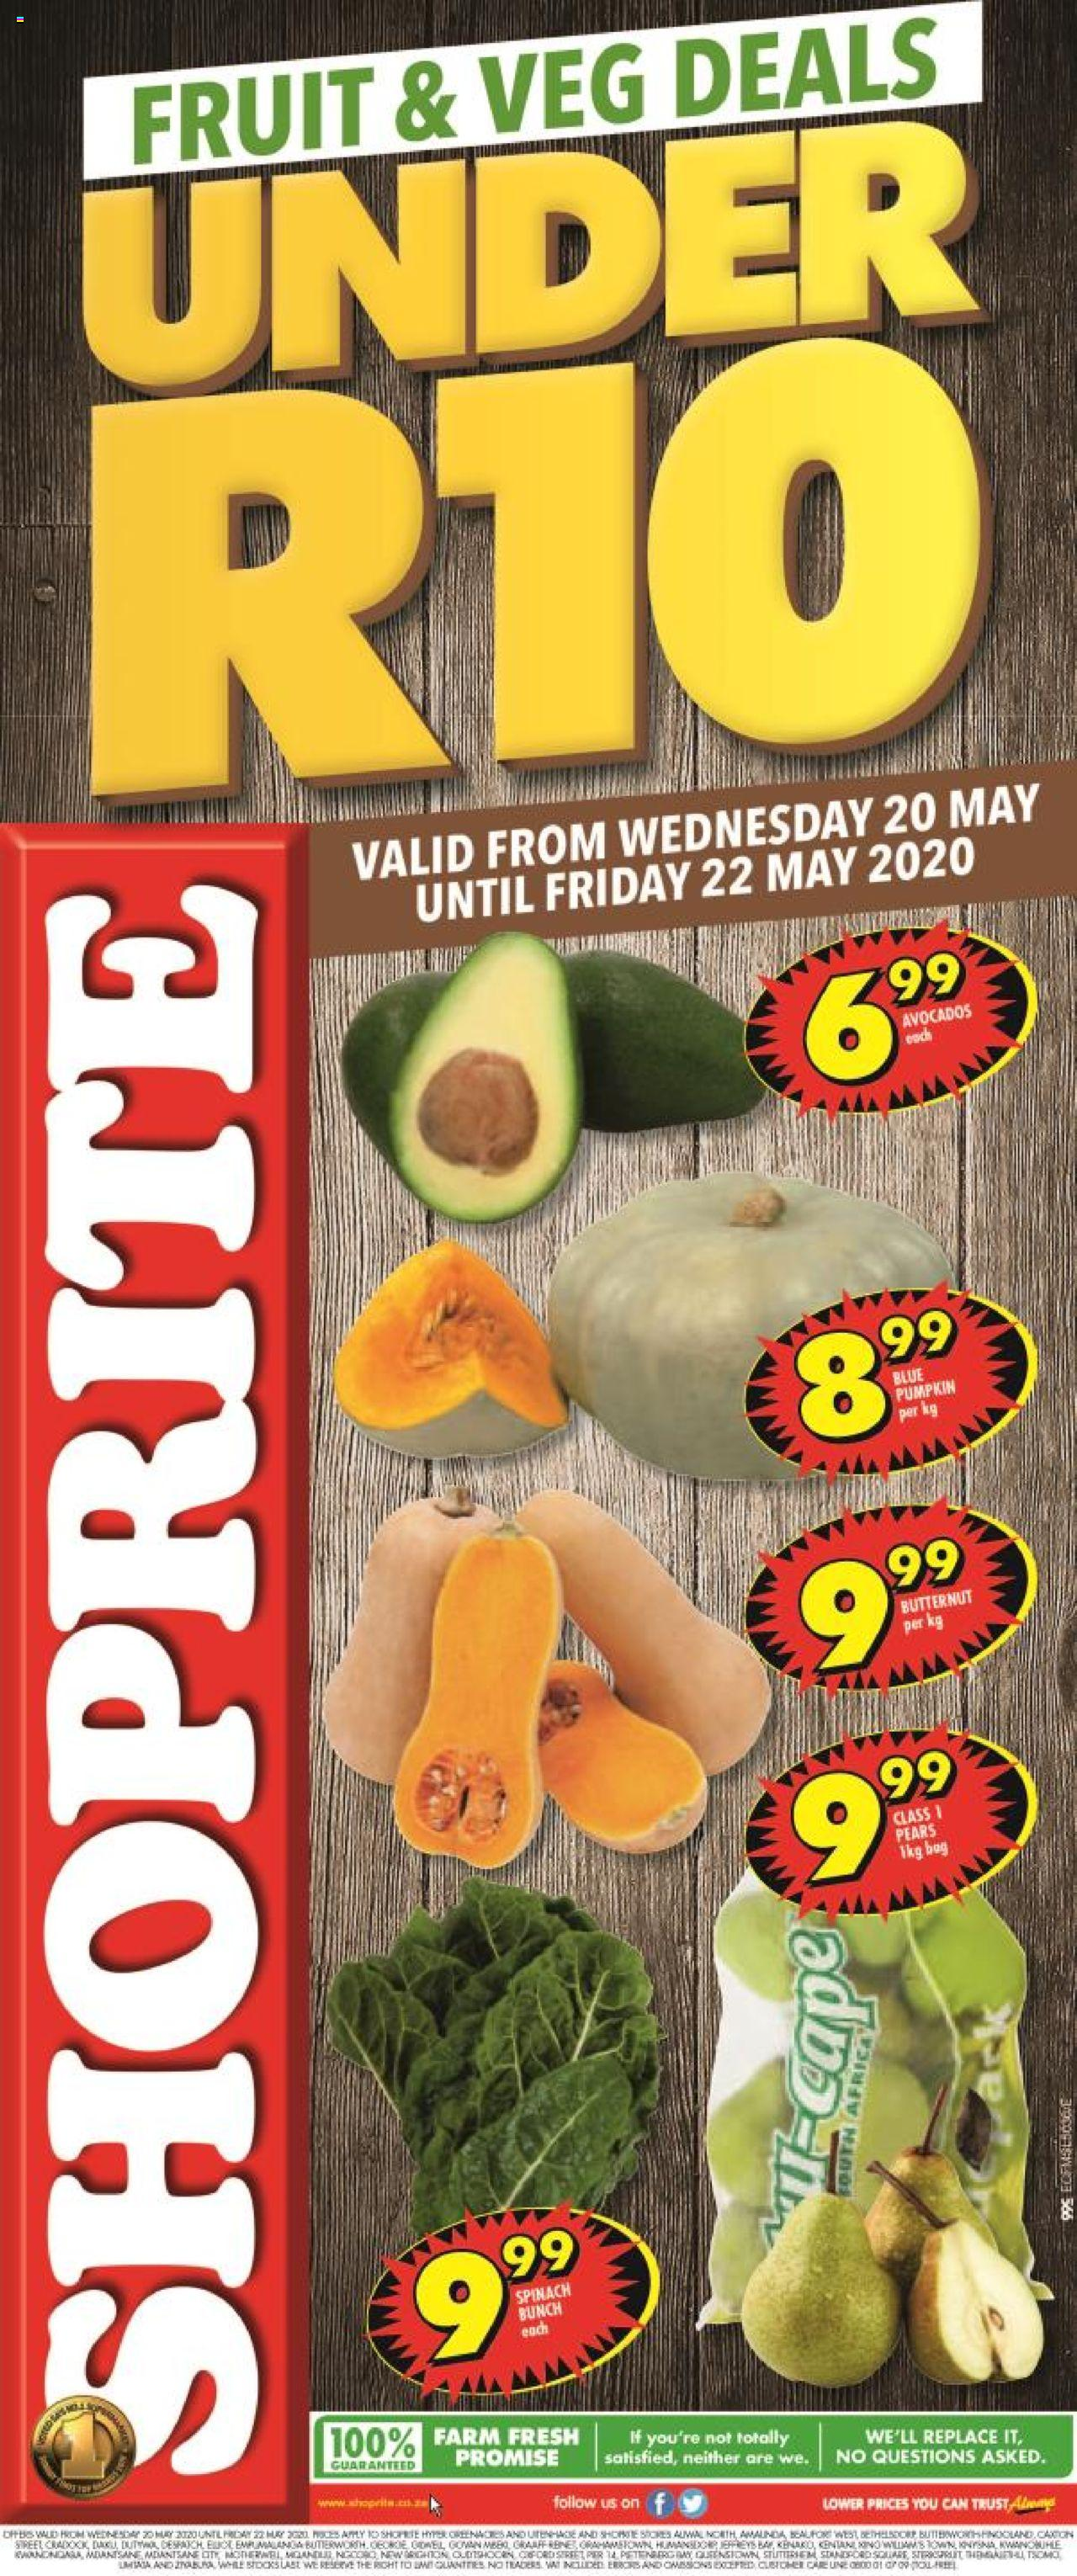 shoprite specials fruit and vegs 20 may 2020